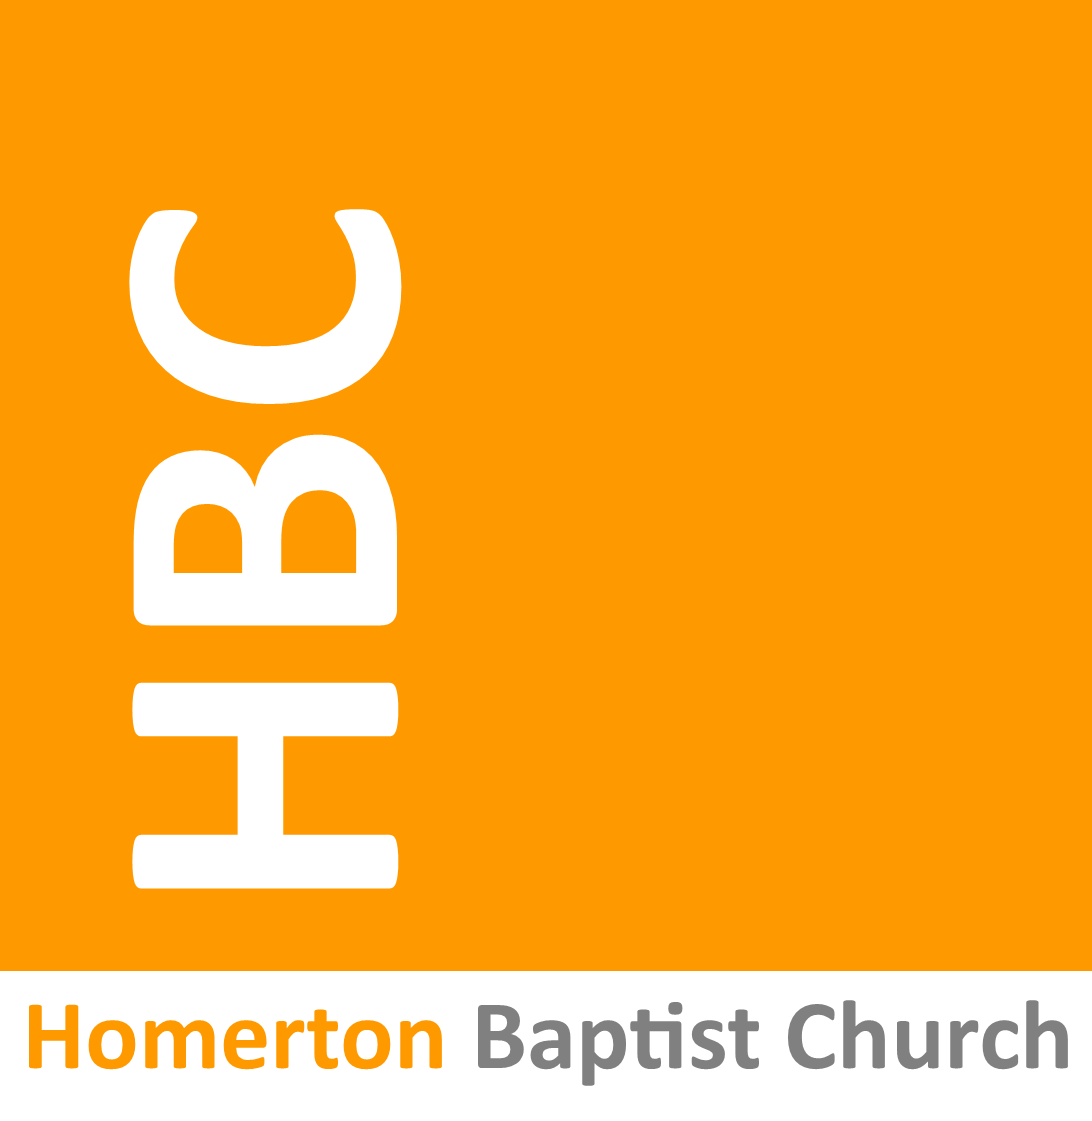 Homerton Baptist Church